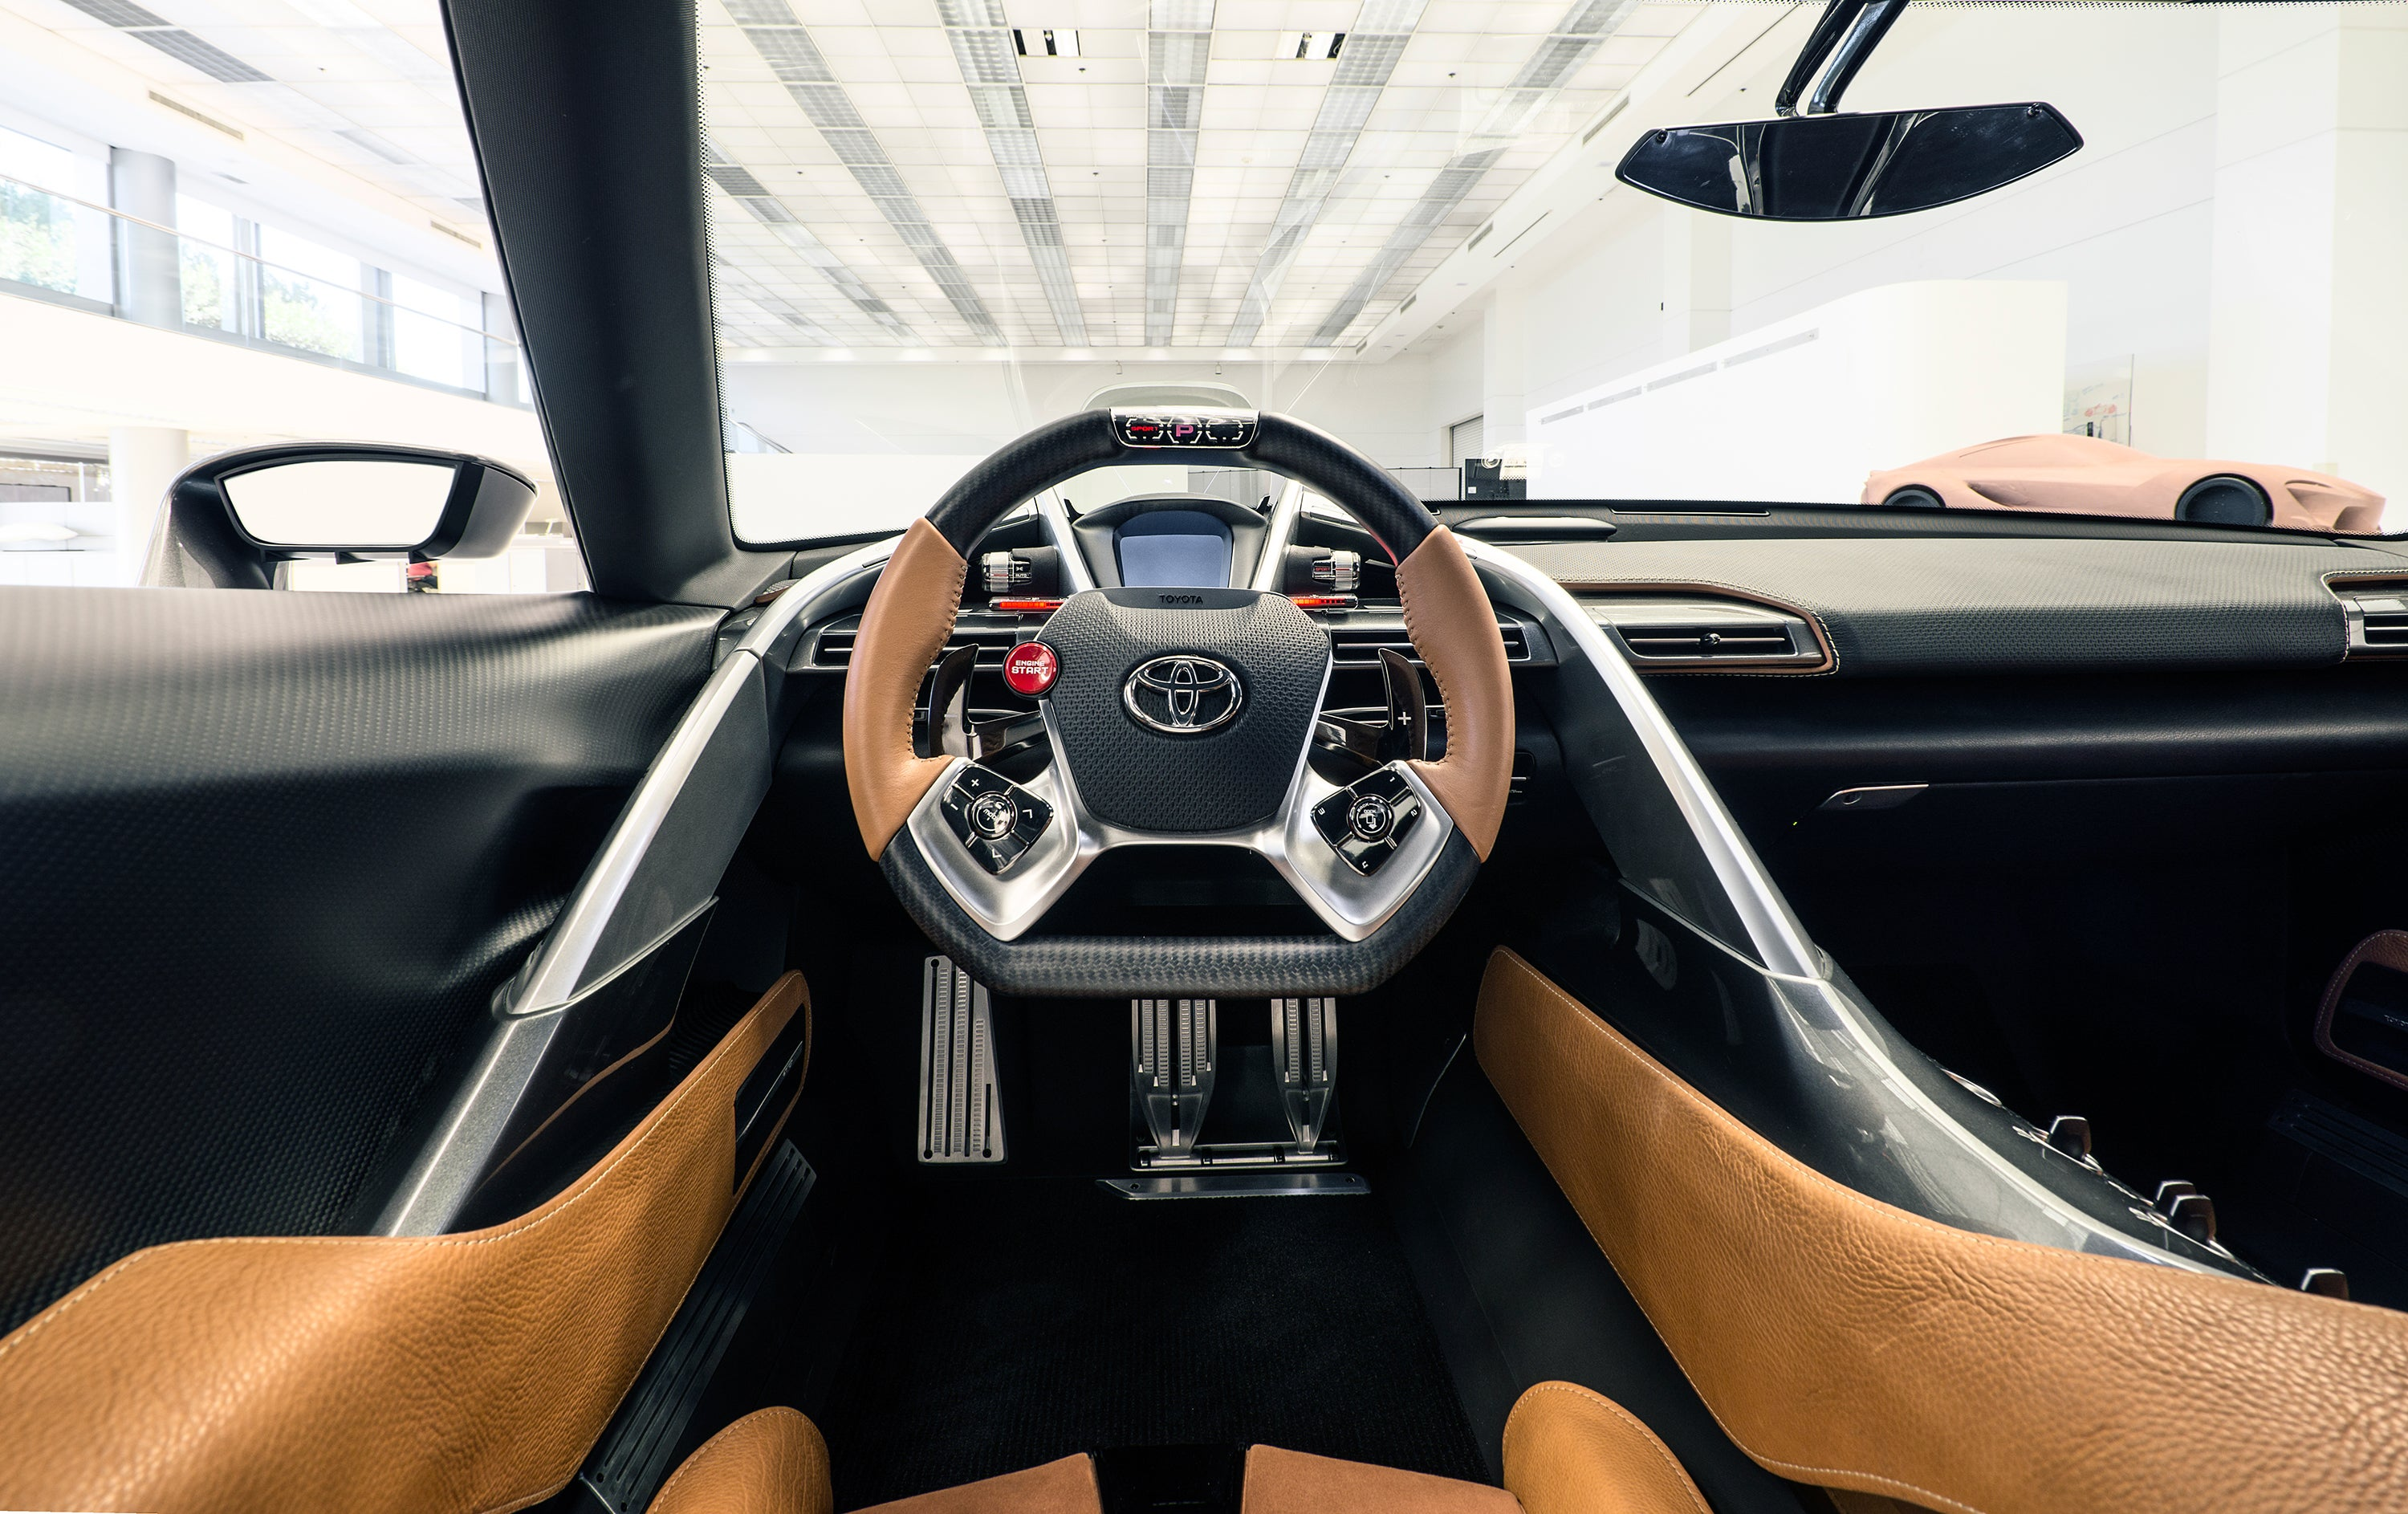 Toyota ft 1 's New Look